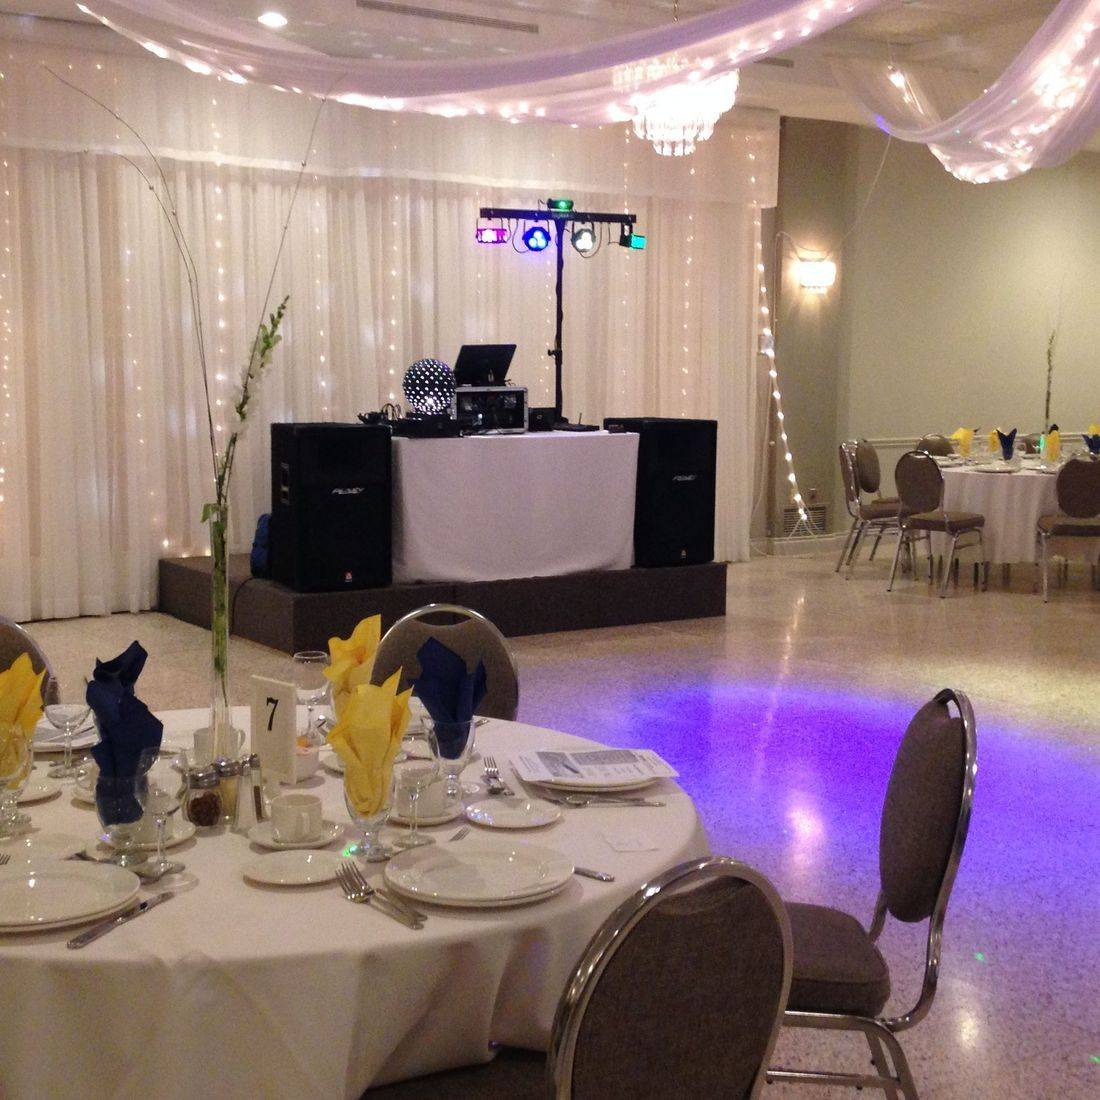 Mr. Productions DJ Service  in Binbrook at Famee Furlane in Binbrook.